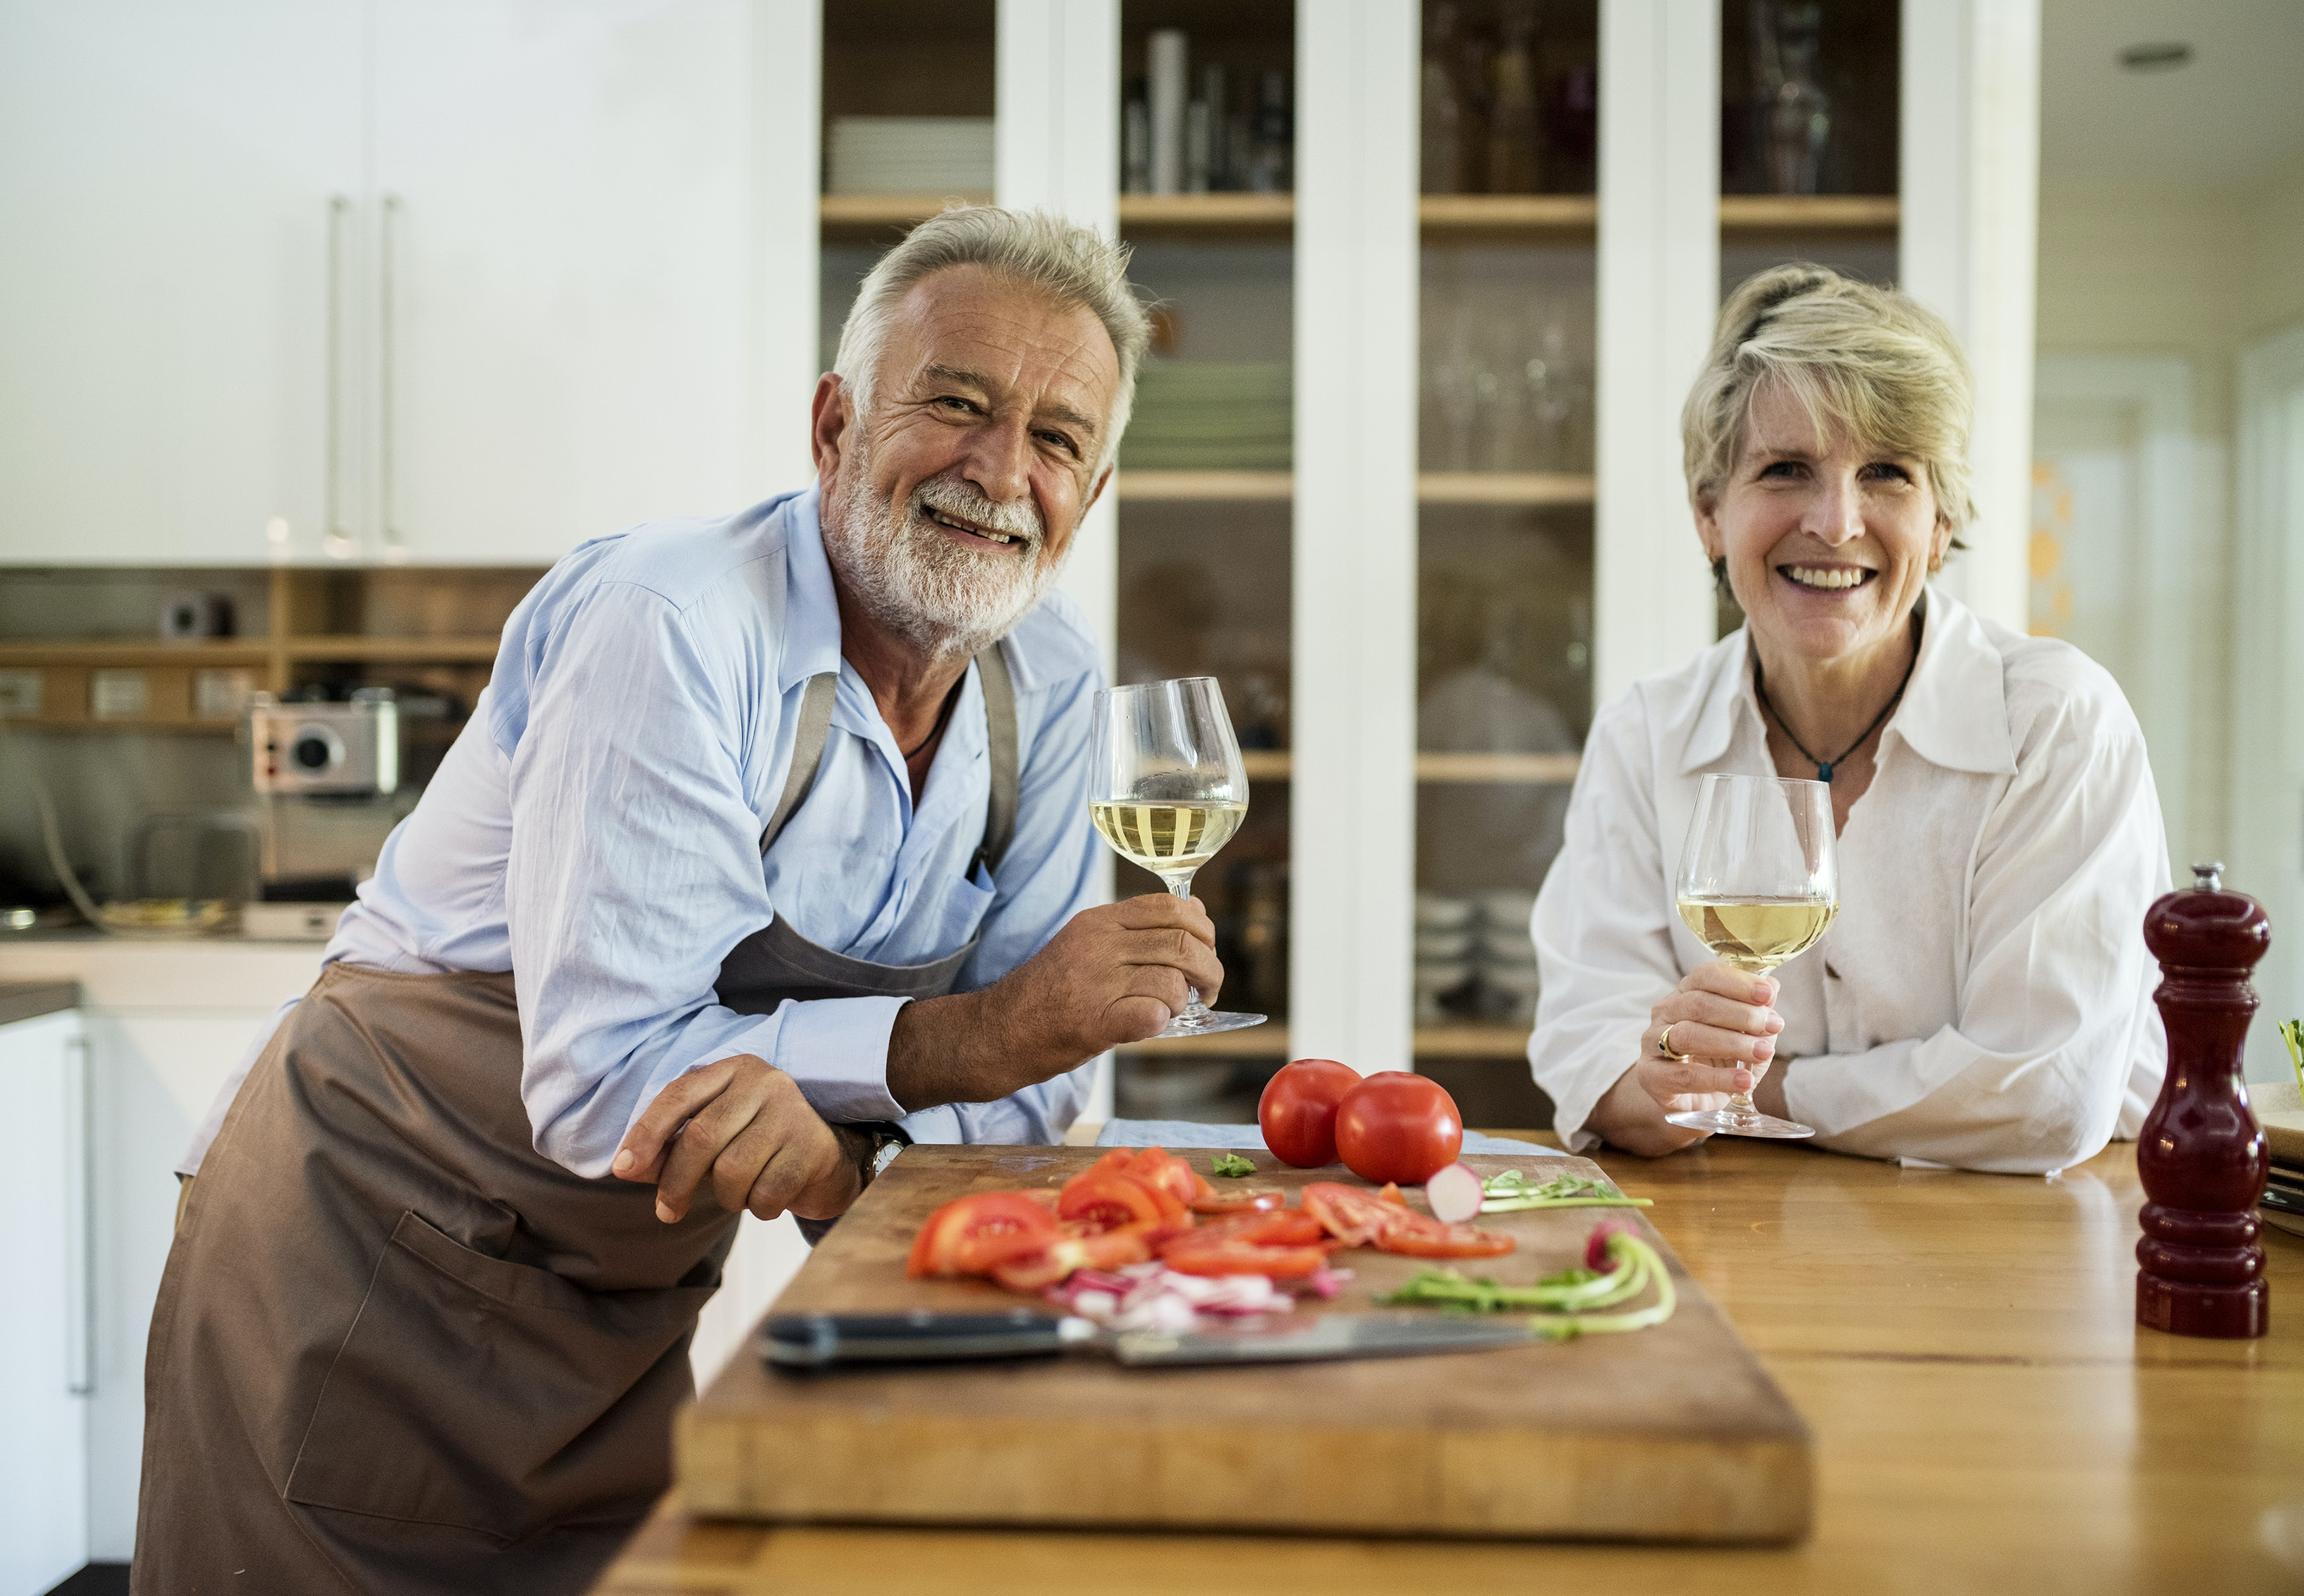 man and woman holding wine glasses smiling in front of table